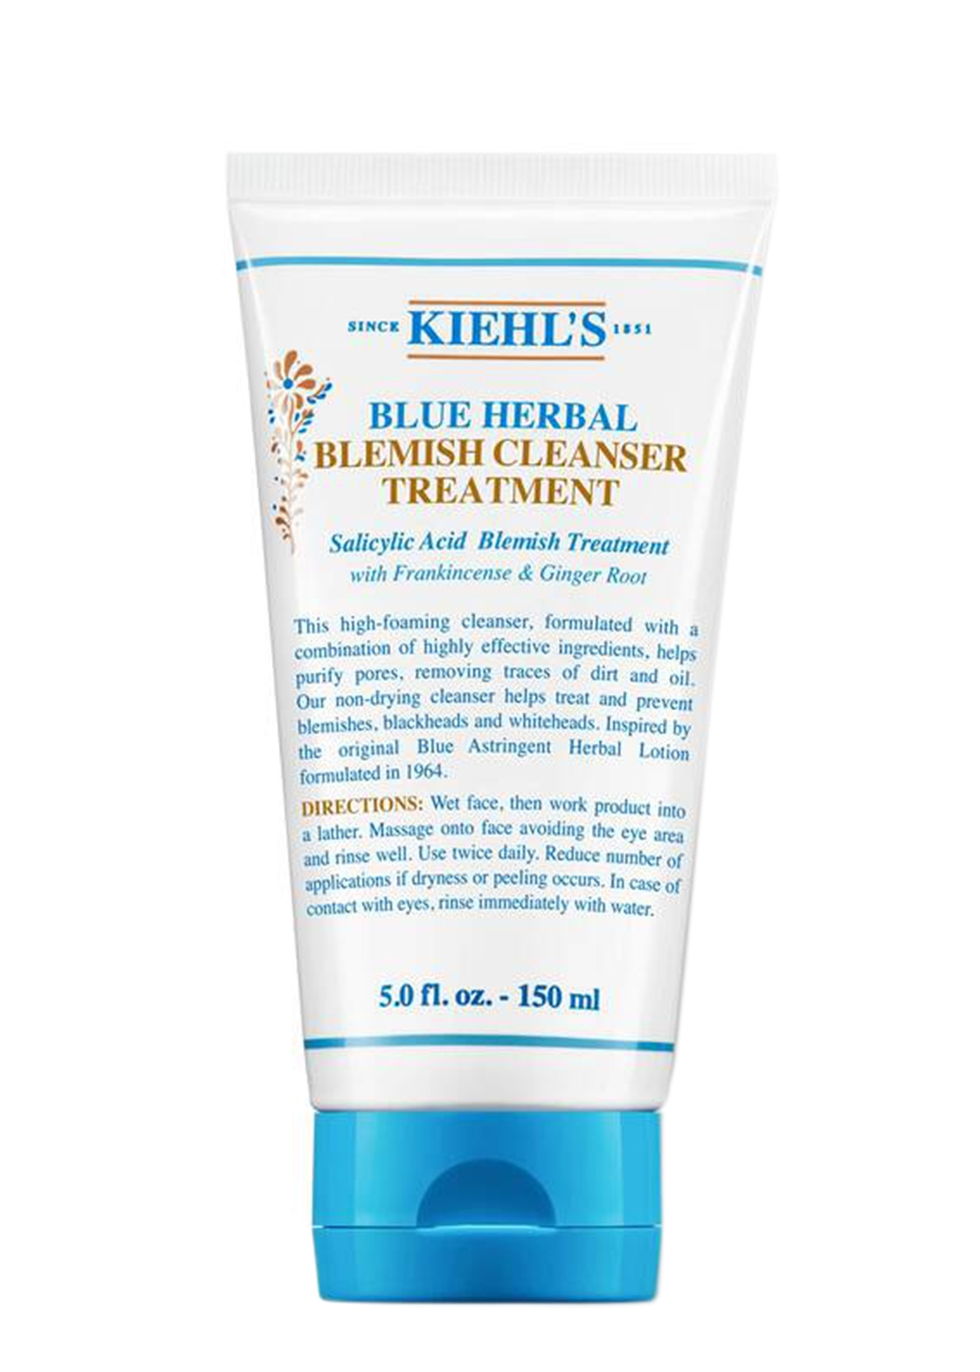 Blue Herbal Blemish Cleanser Treatment 150ml